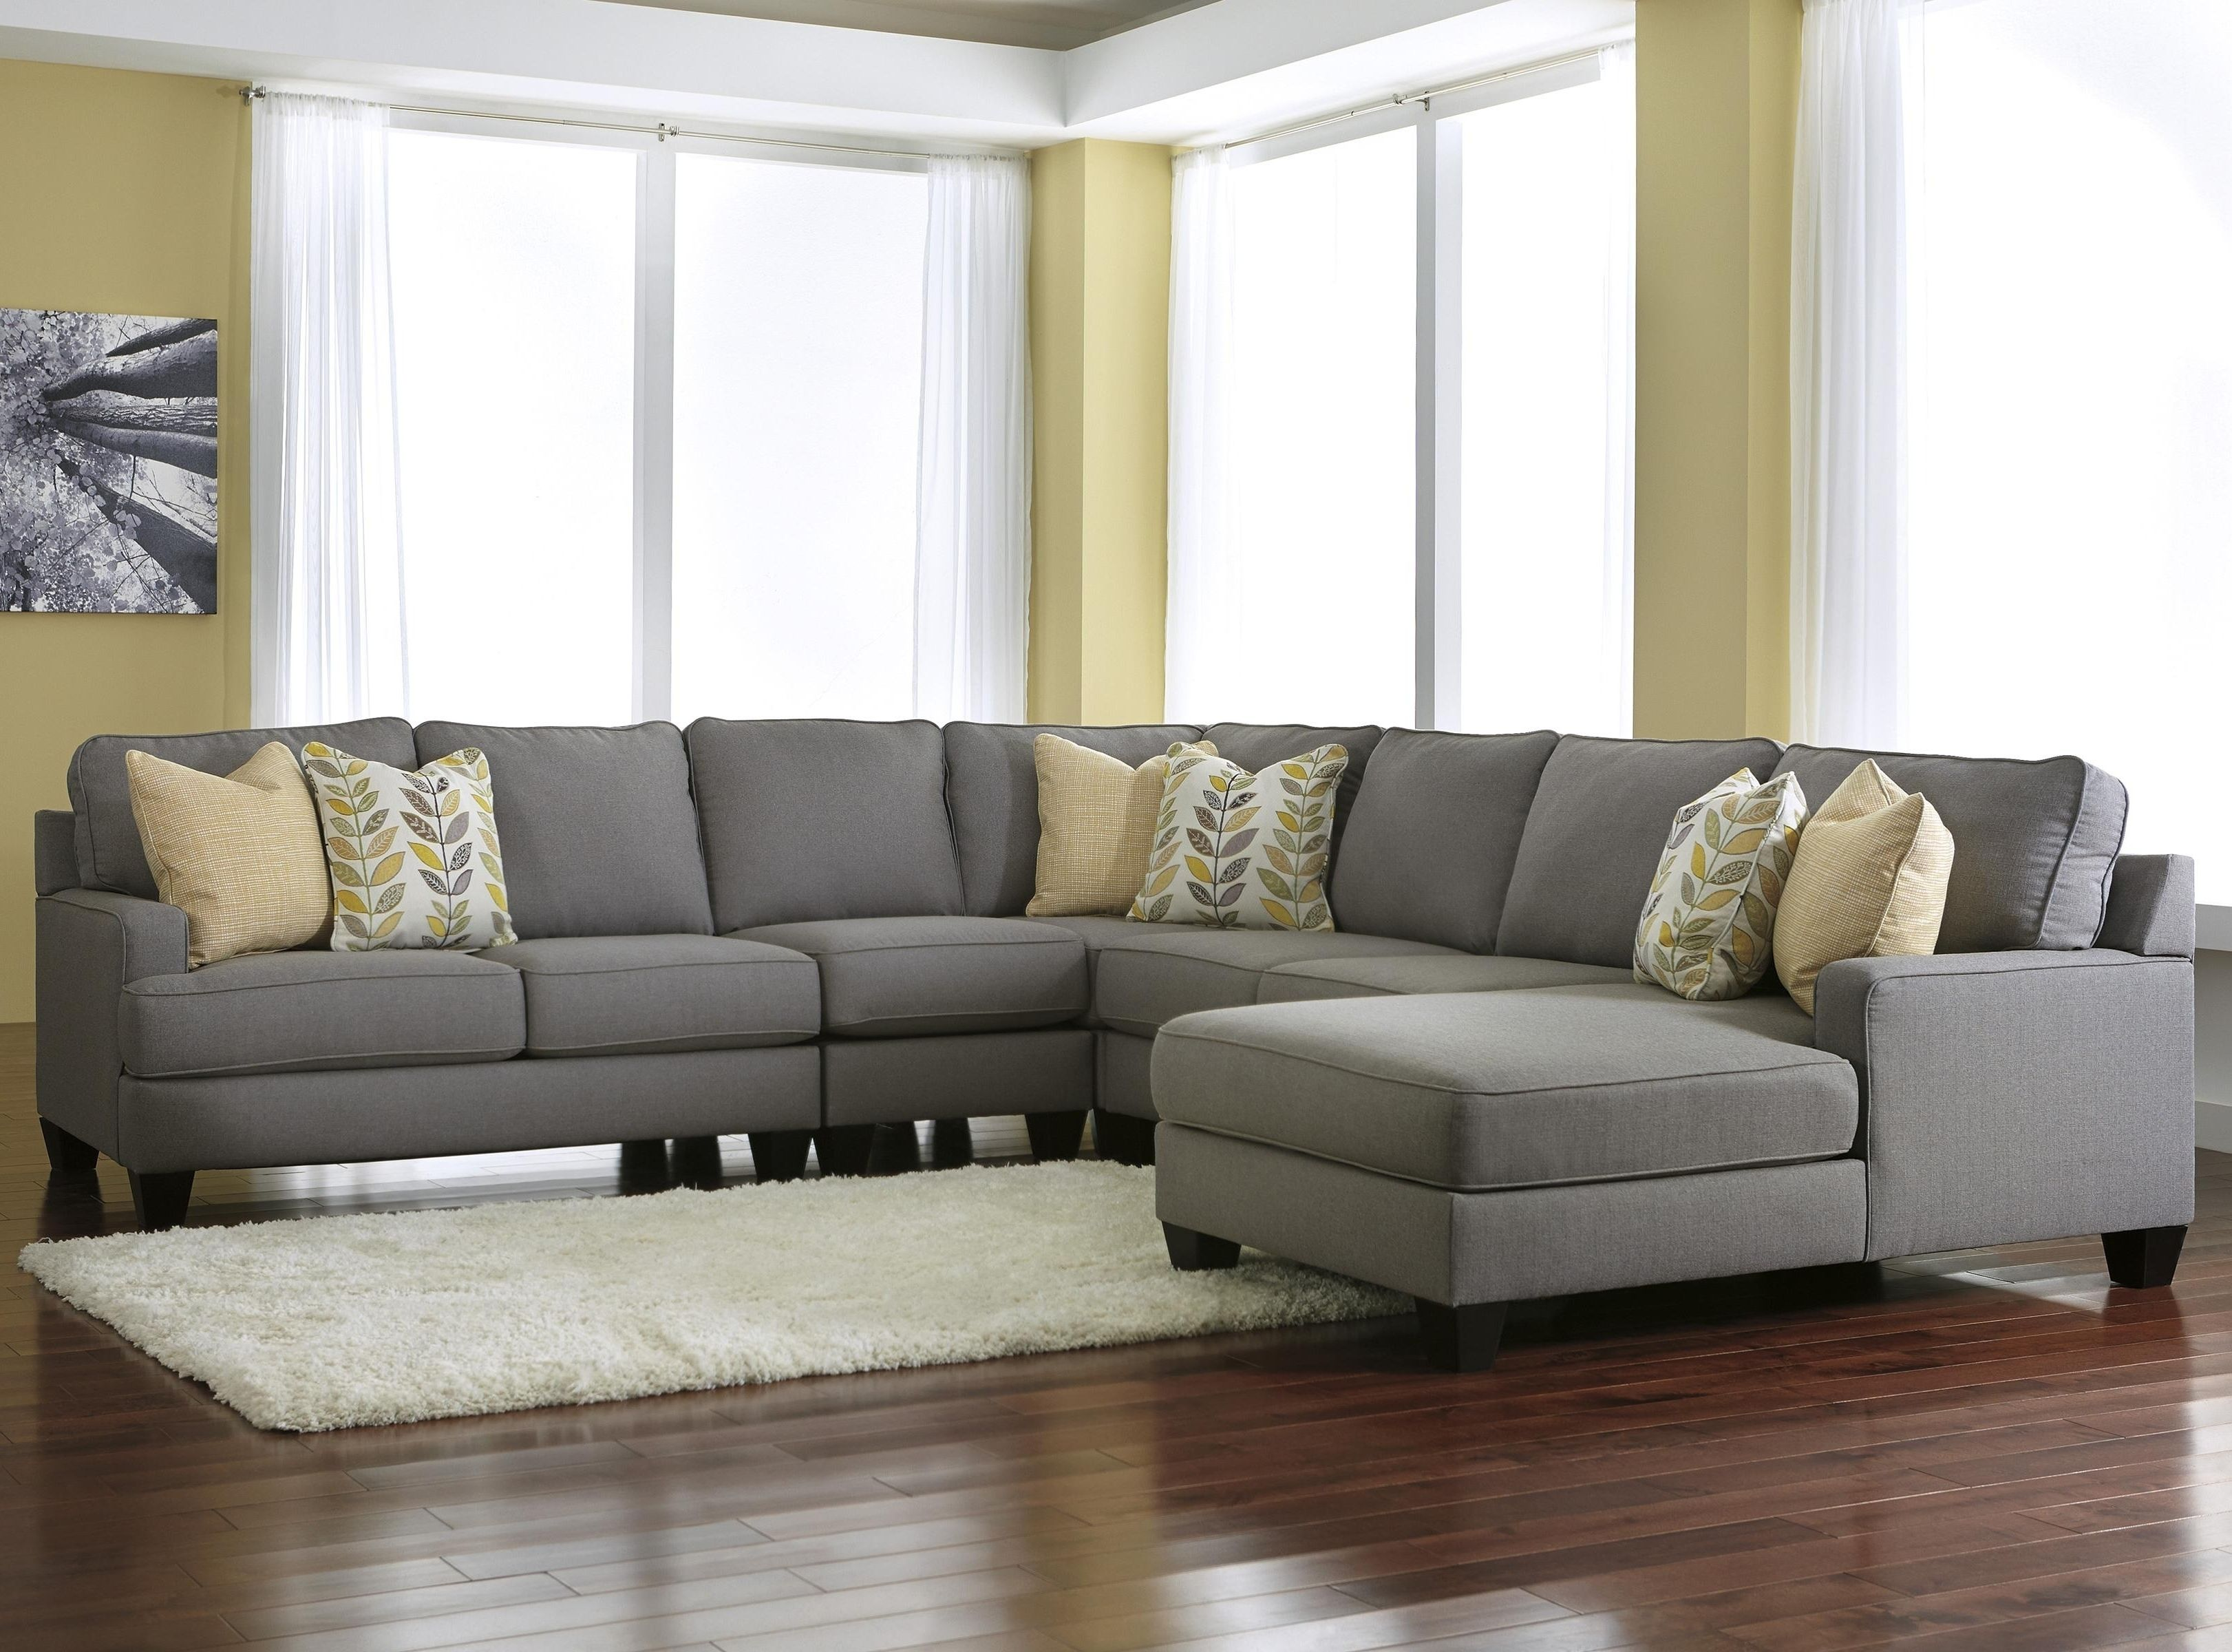 Duluth Mn Sectional Sofas Tany